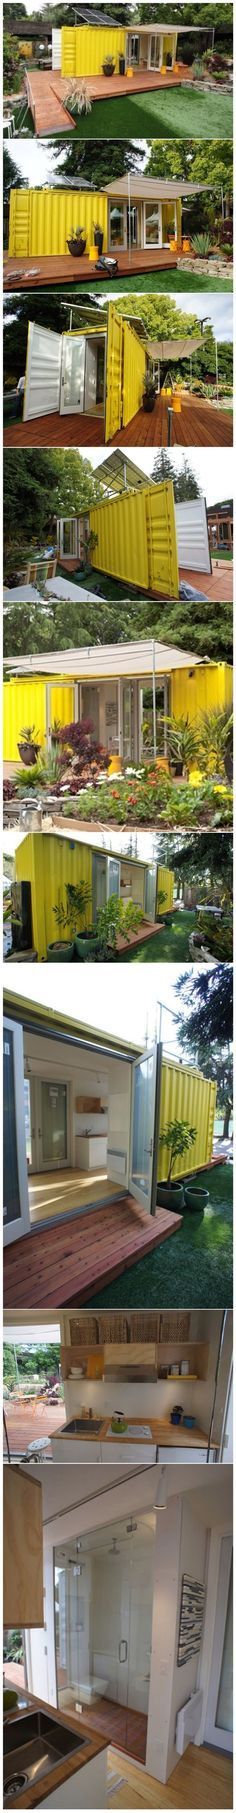 """via <a href=""""http://www.cargotecture.com"""" rel=""""nofollow"""" target=""""_blank"""">www.cargotecture.com</a> This little shipping container house called """"The Nomad"""" was designed for Sunset Magazine by Seattle-Based HyBrid Architecture. The home's shell is a used 24 foot shipping container that provides 192 sq. ft. of interior living space and can sleep four people. The house has a galley kitchen, a bathroom and several exterior openings. ~ Great pin! For Oahu architectural design visit <a…"""